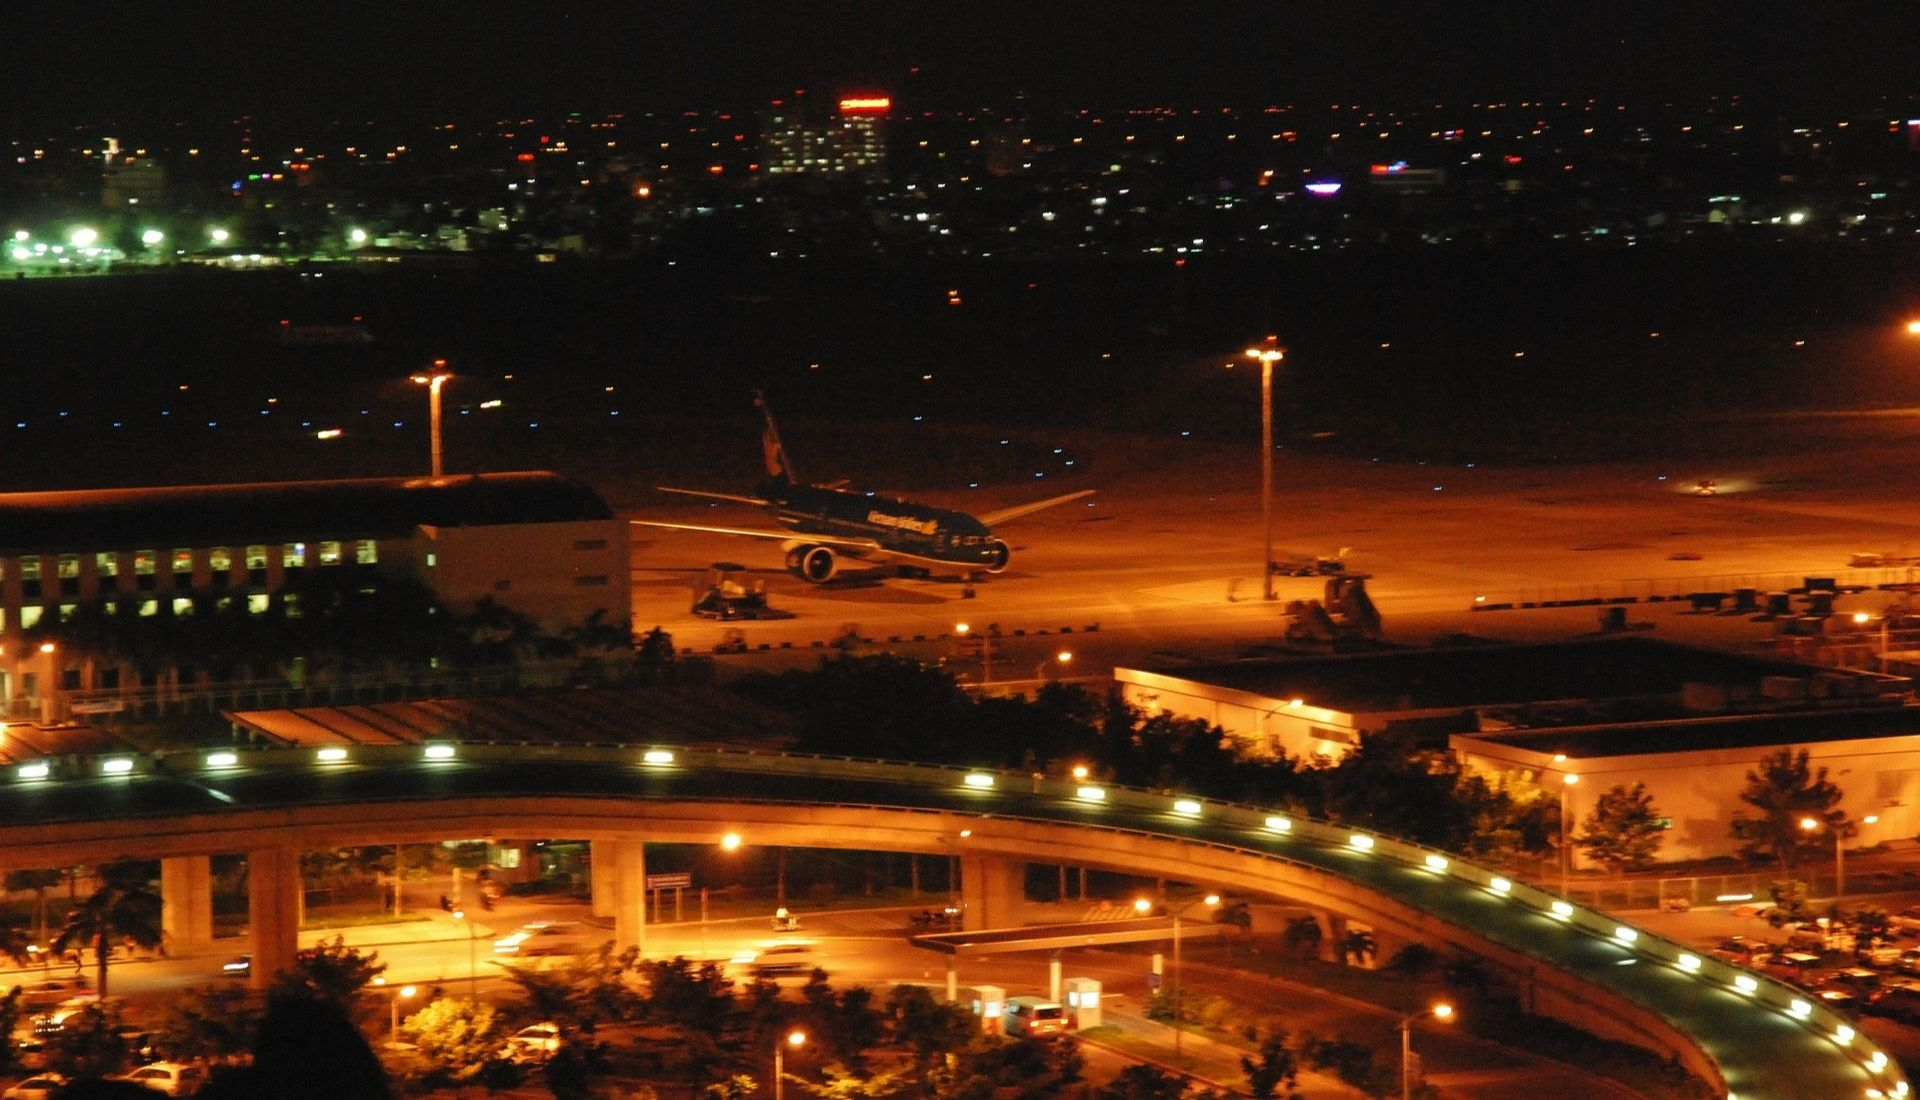 Saigon Airport at Night